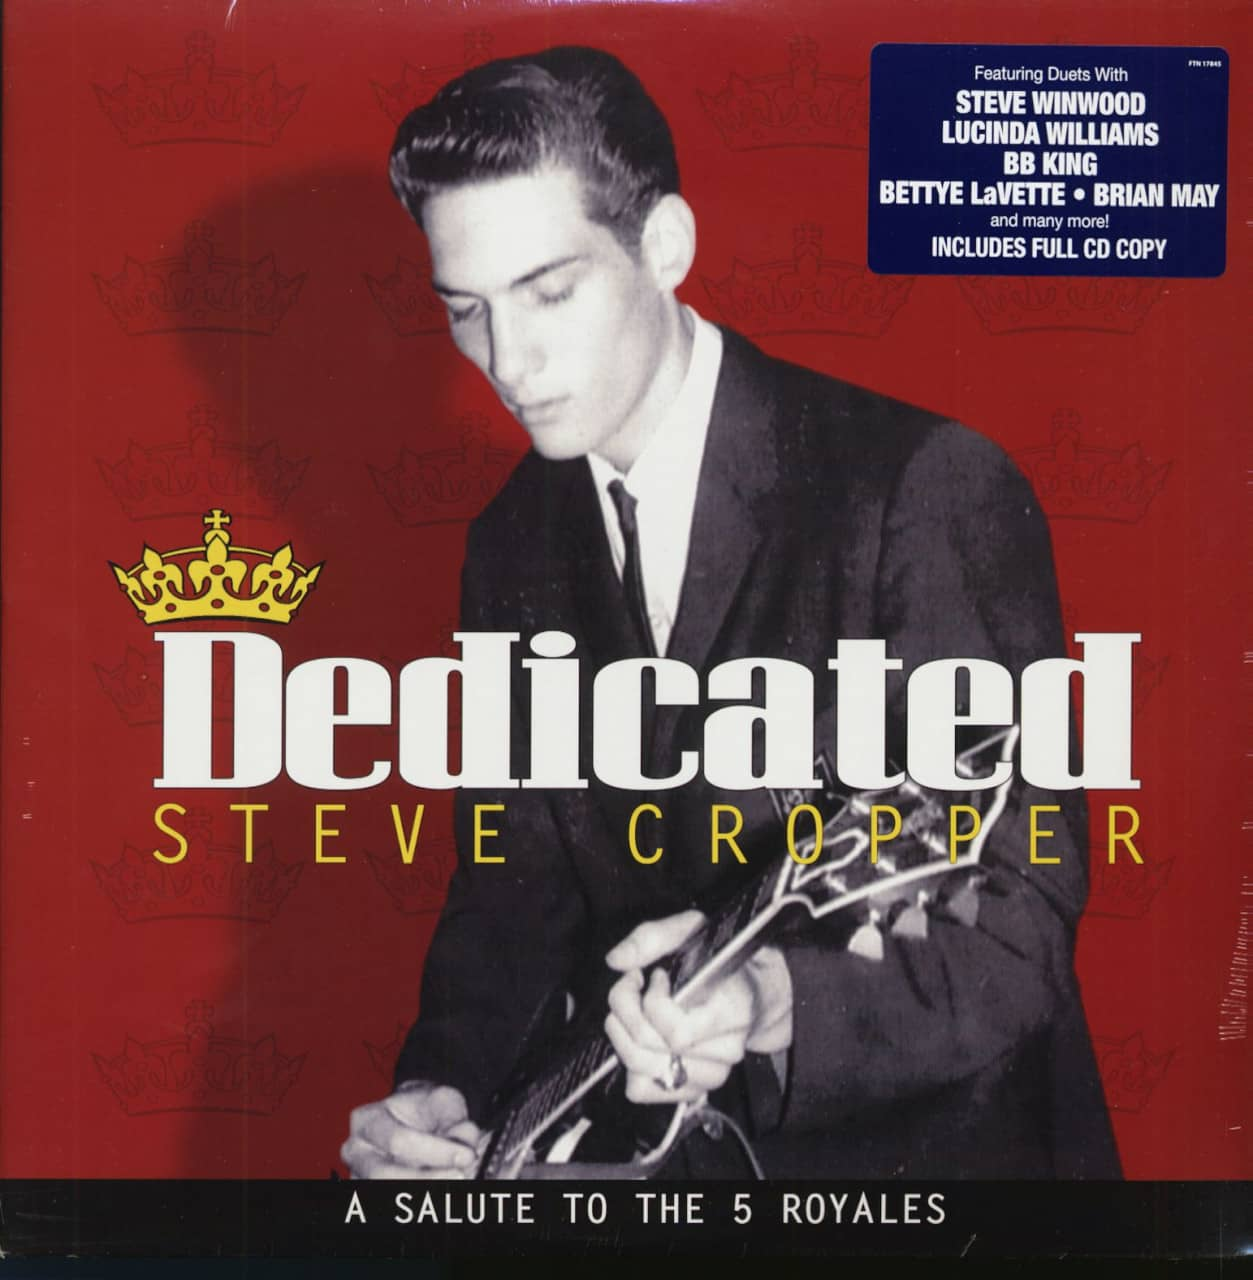 Steve Cropper LP: Dedicated - A Salute To The 5 Royales (LP & CD ...